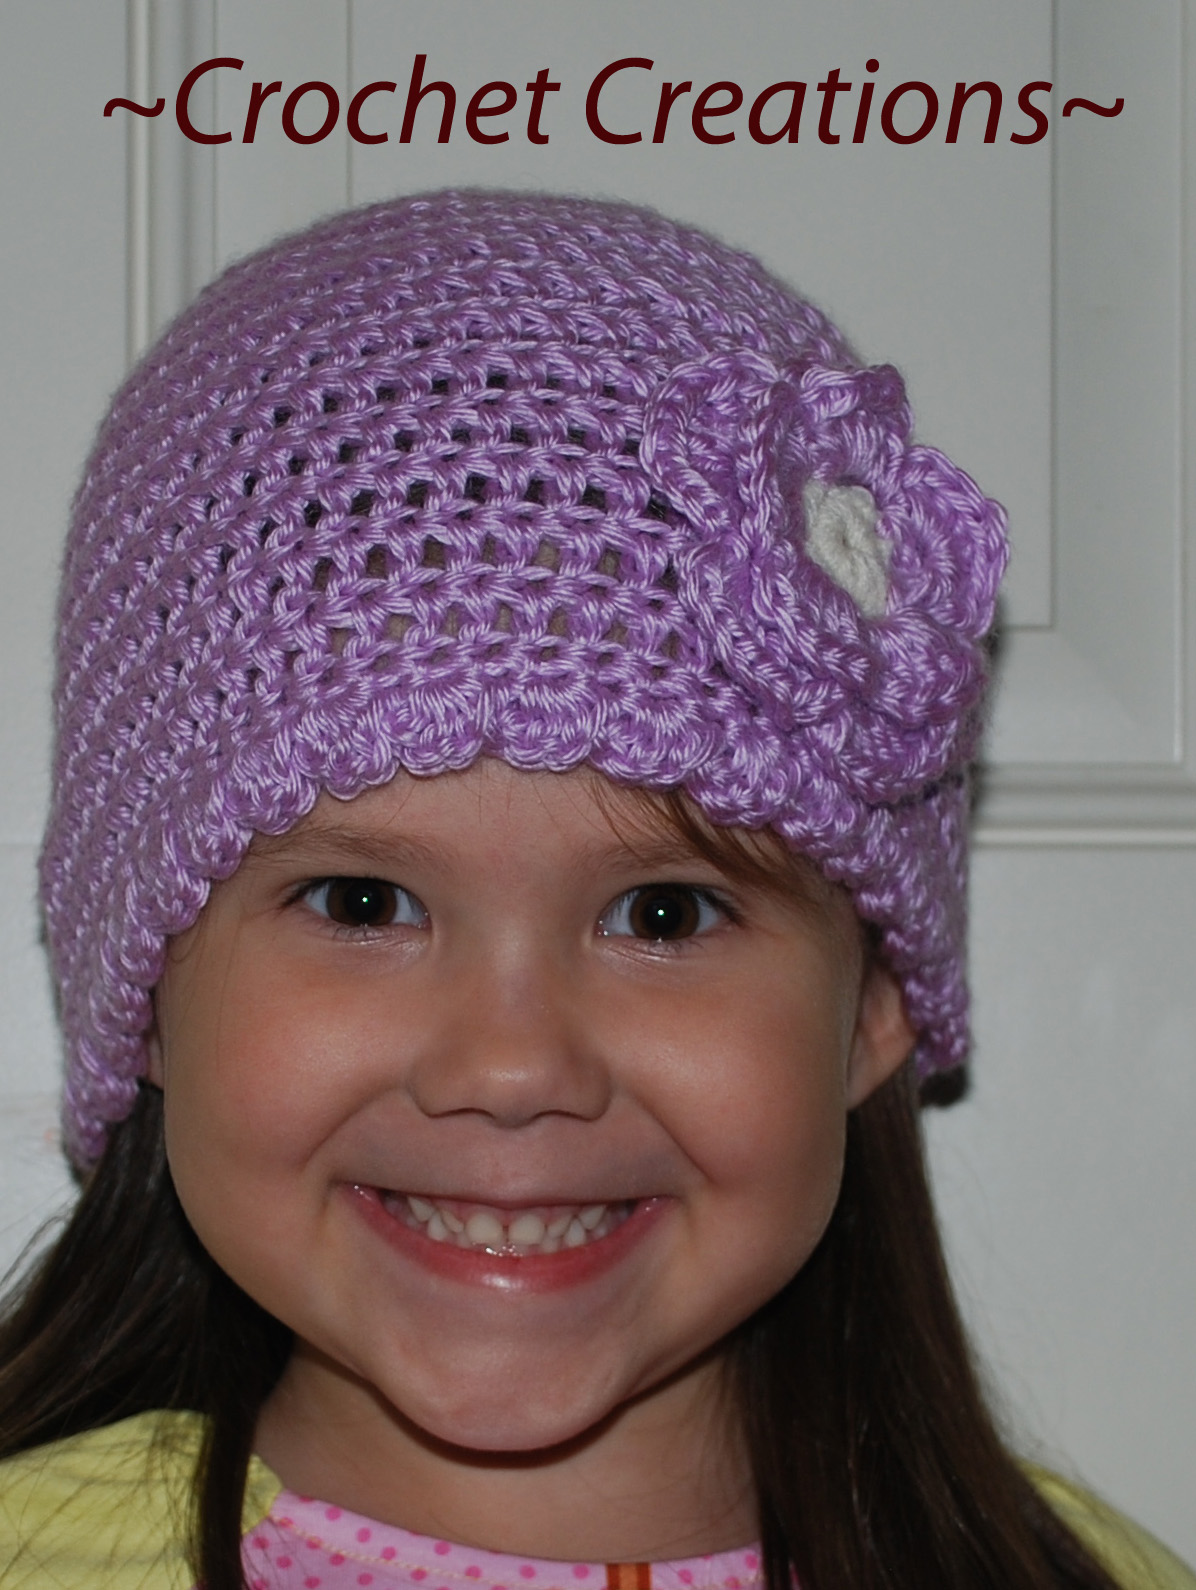 Crochet Hat Patterns With Instructions : CROCHET INSTRUCTIONS FOR KIDS How To Crochet